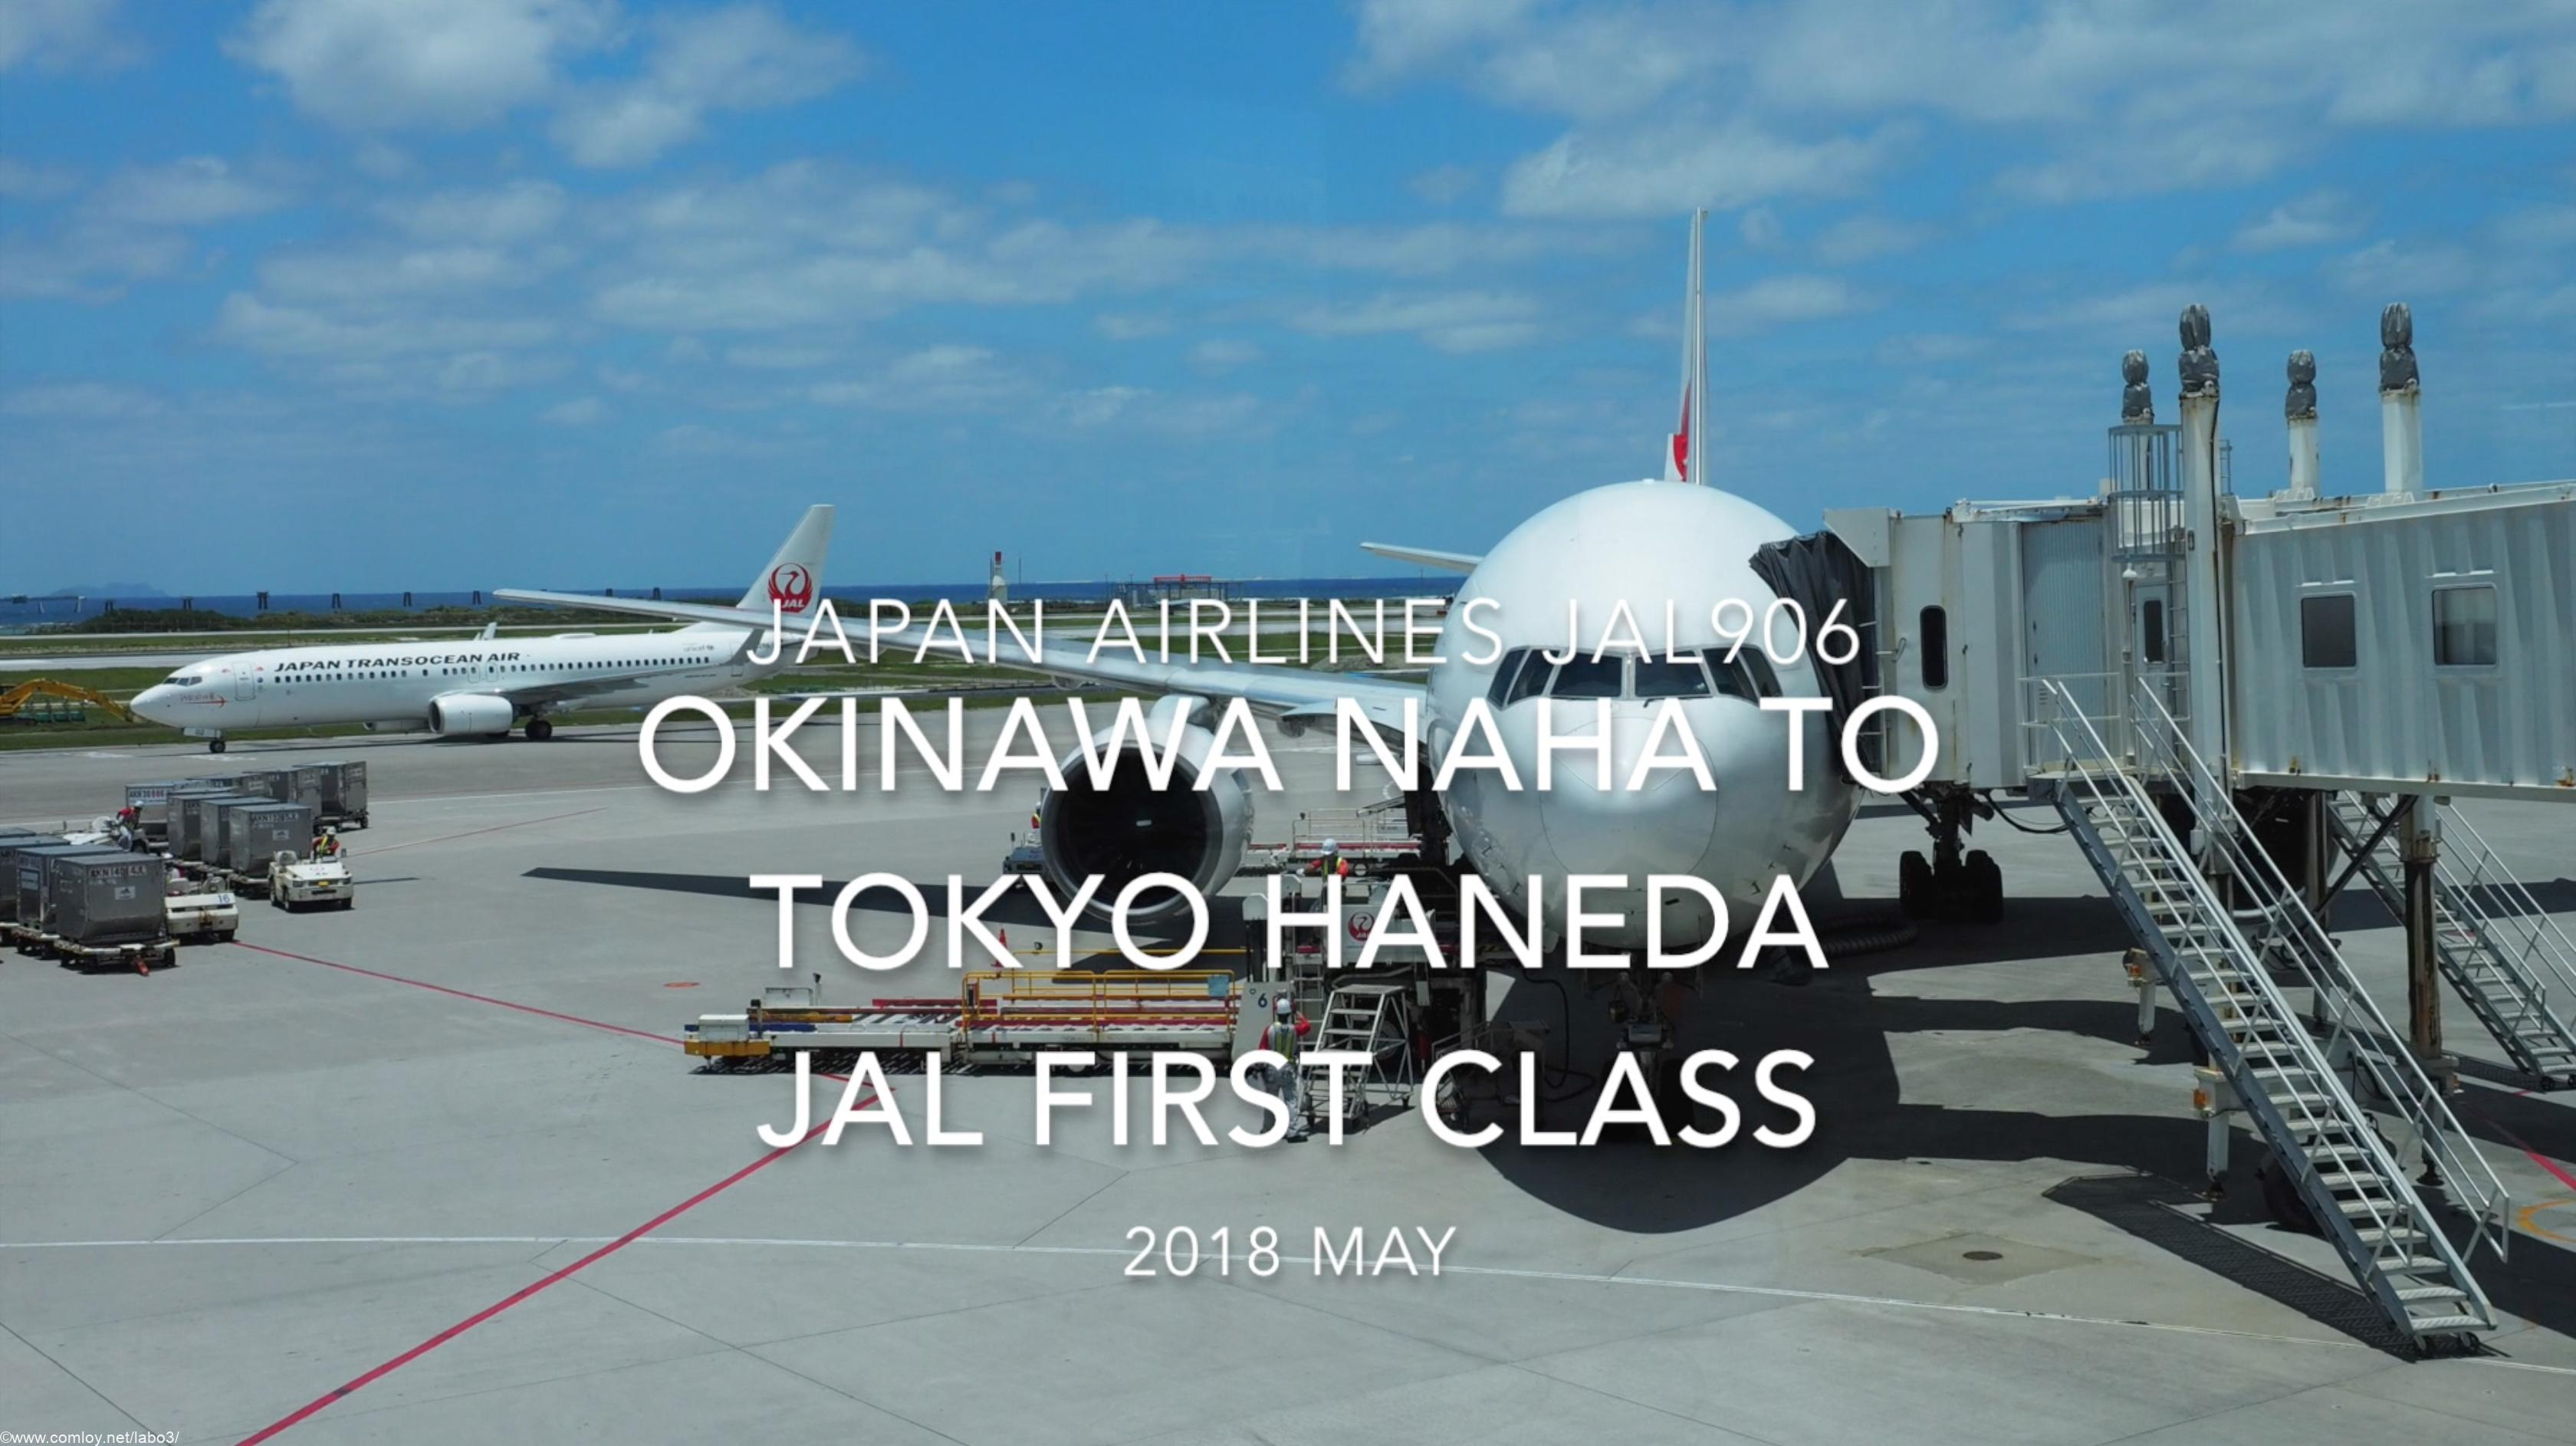 【Flight Report】 JAPAN AIRLINES JAL906 OKINAWA NAHA to TOKYO HANEDA JAL FIRST CLASS 2018 May 日本航空 那覇 - 羽田 ファーストクラス搭乗記